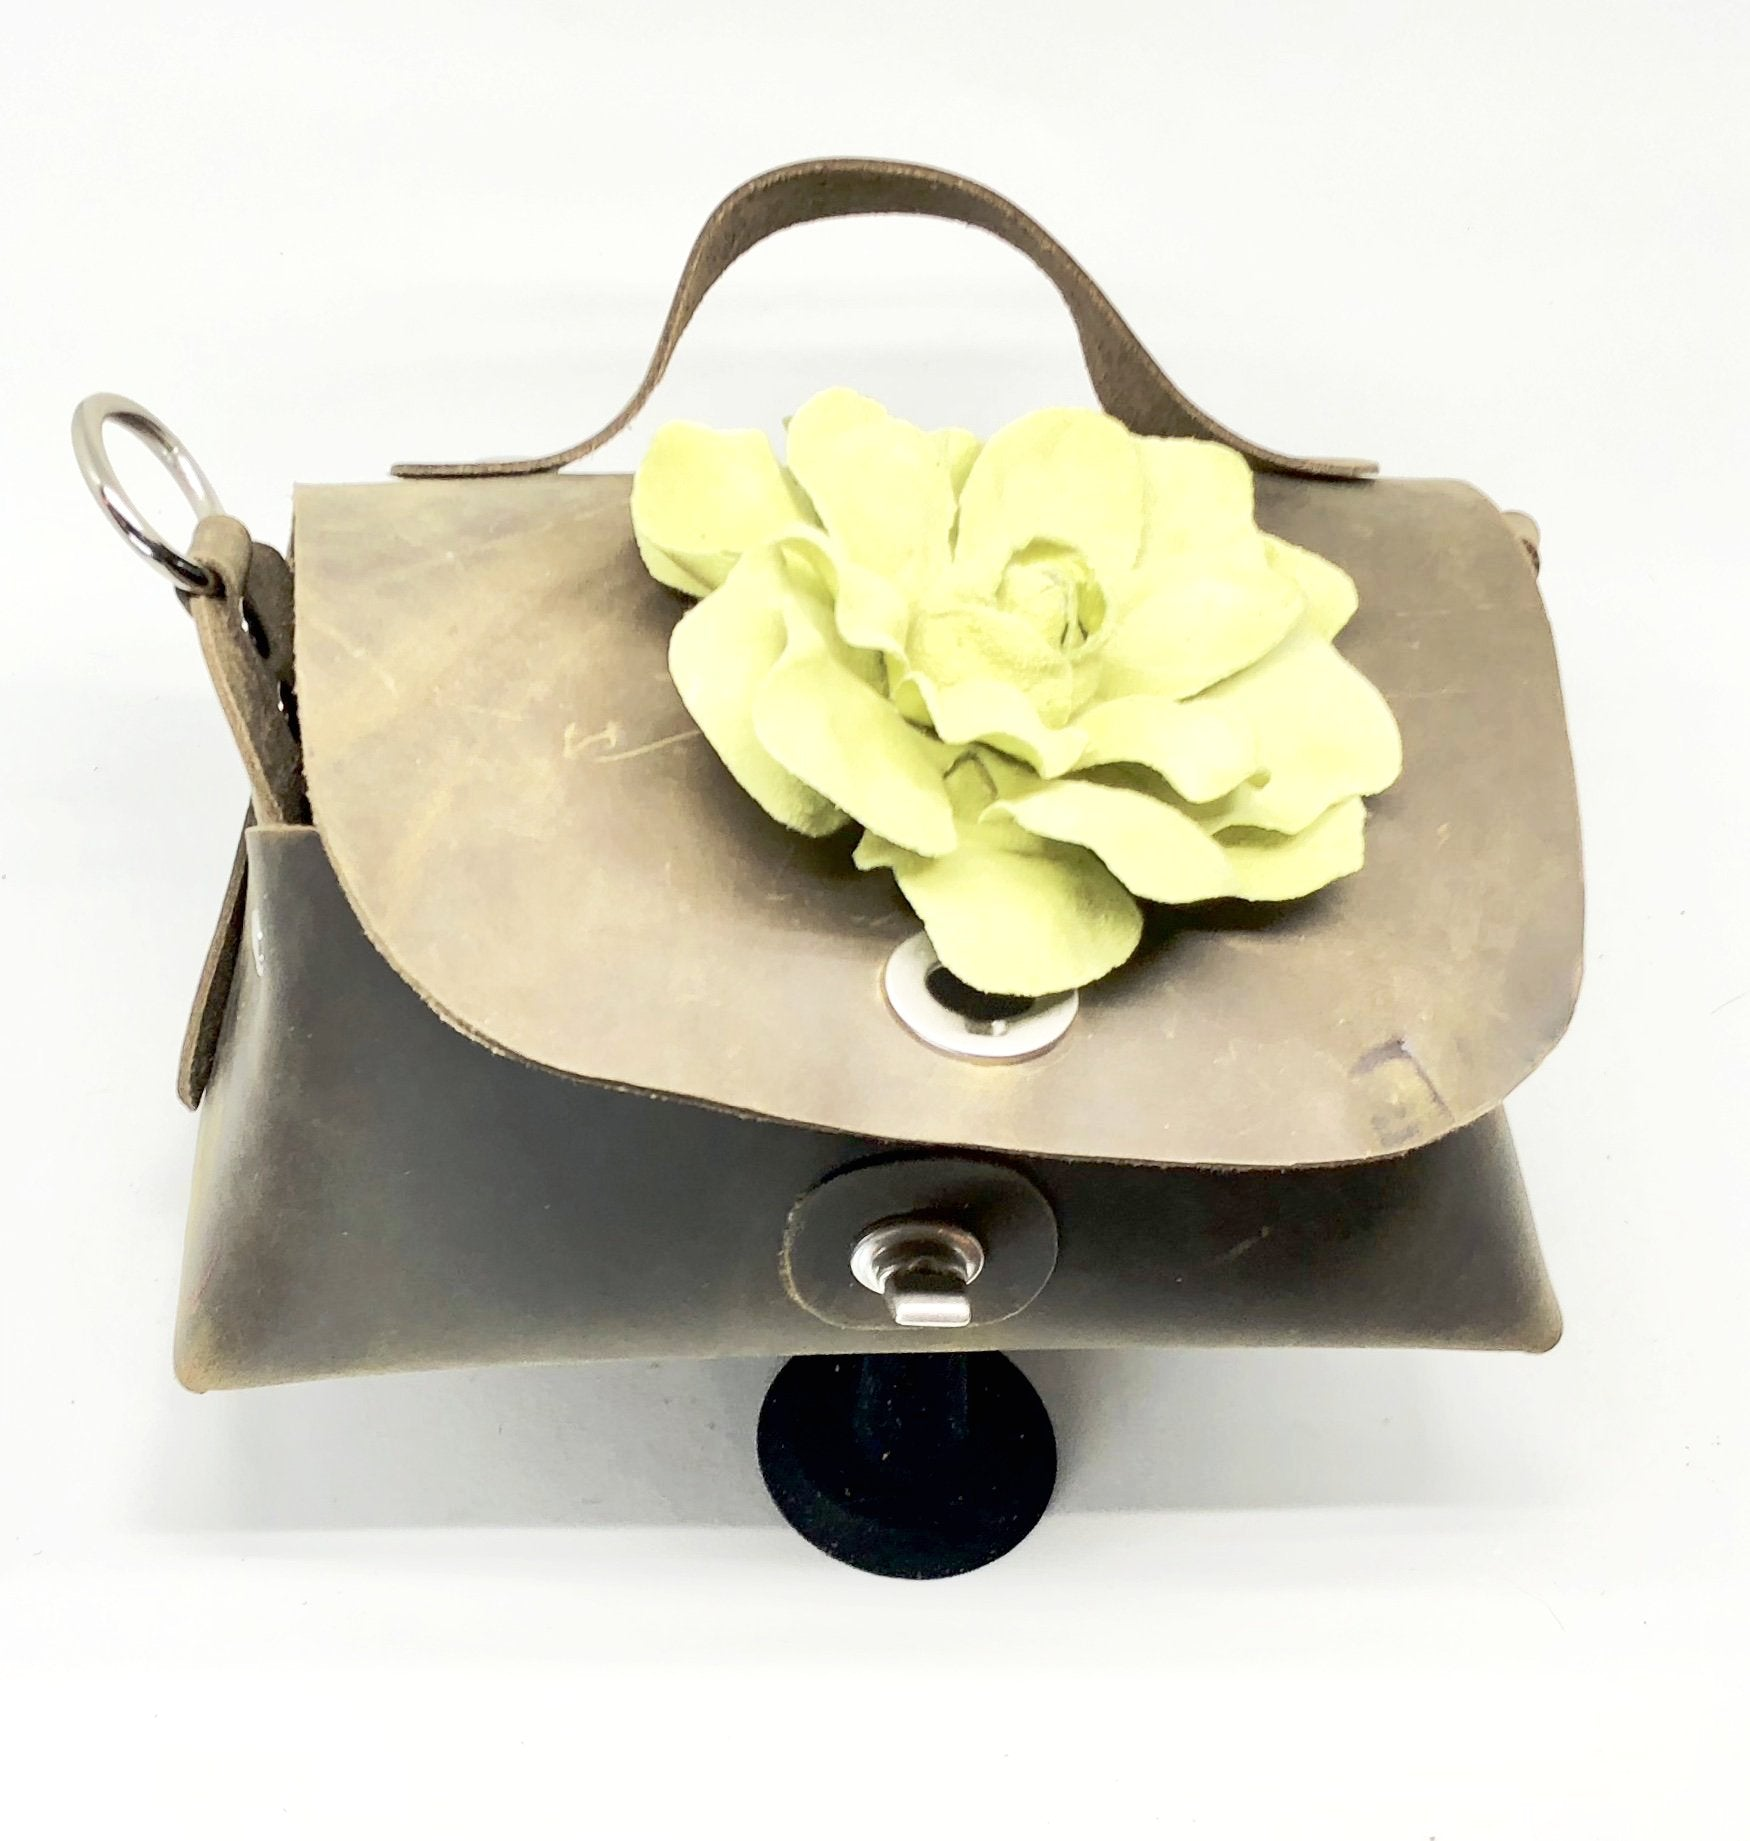 LEATHER RIVETED BAG WITH METAL HARDWARE, ADJUSTABLE SHOULDER STRAP AND OVERSIZED SUEDE FLOWER by nyet jewelry